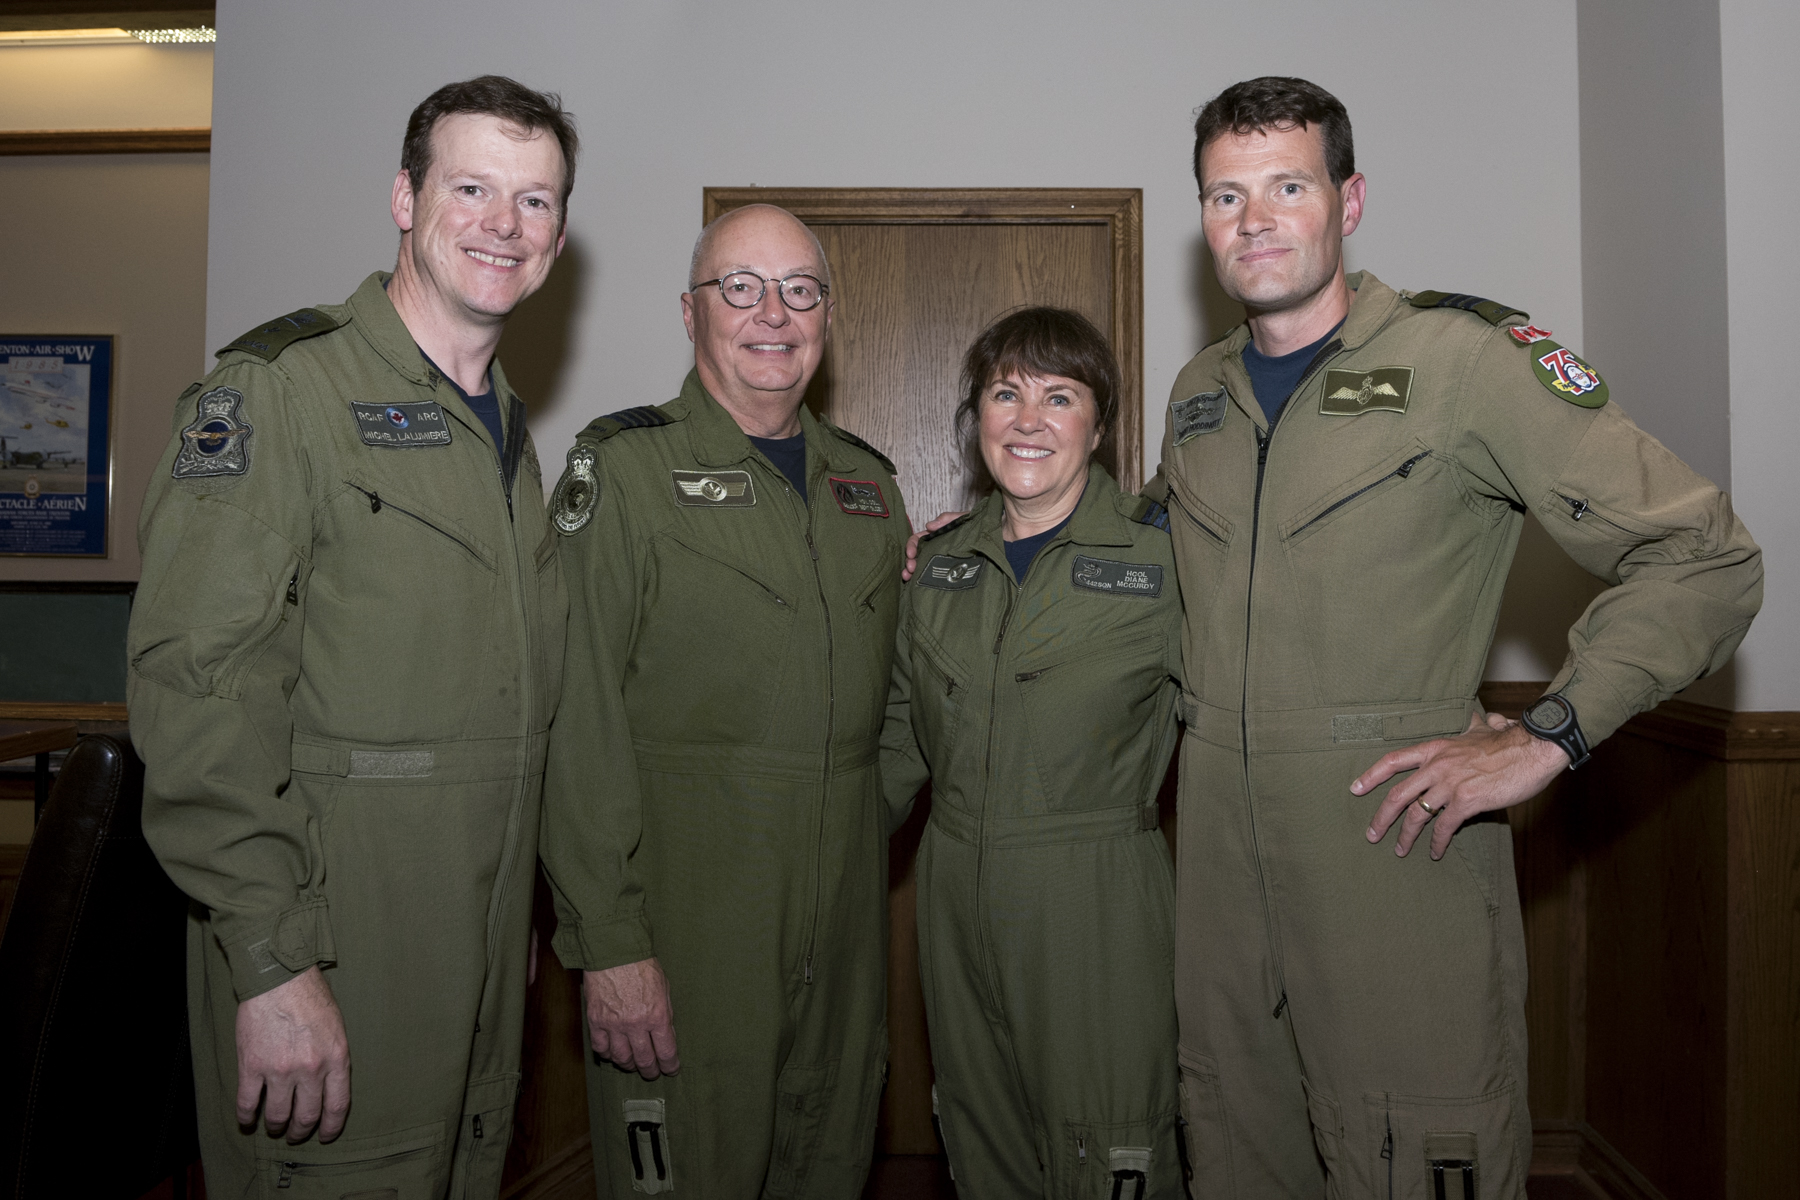 Honorary Colonel Diane McCurdy joins, from left, Brigadier-General Michel Lalumière, Honorary Colonel Albert Olson and Lieutenant-Colonel Brent Hoddinott on May 31, 2017, inside the officers' mess during the Honorary Colonels' Conference held at 8 Wing Trenton, Ontario. PHOTO: Corporal Rod Doucet, TN05-2017-0263-001